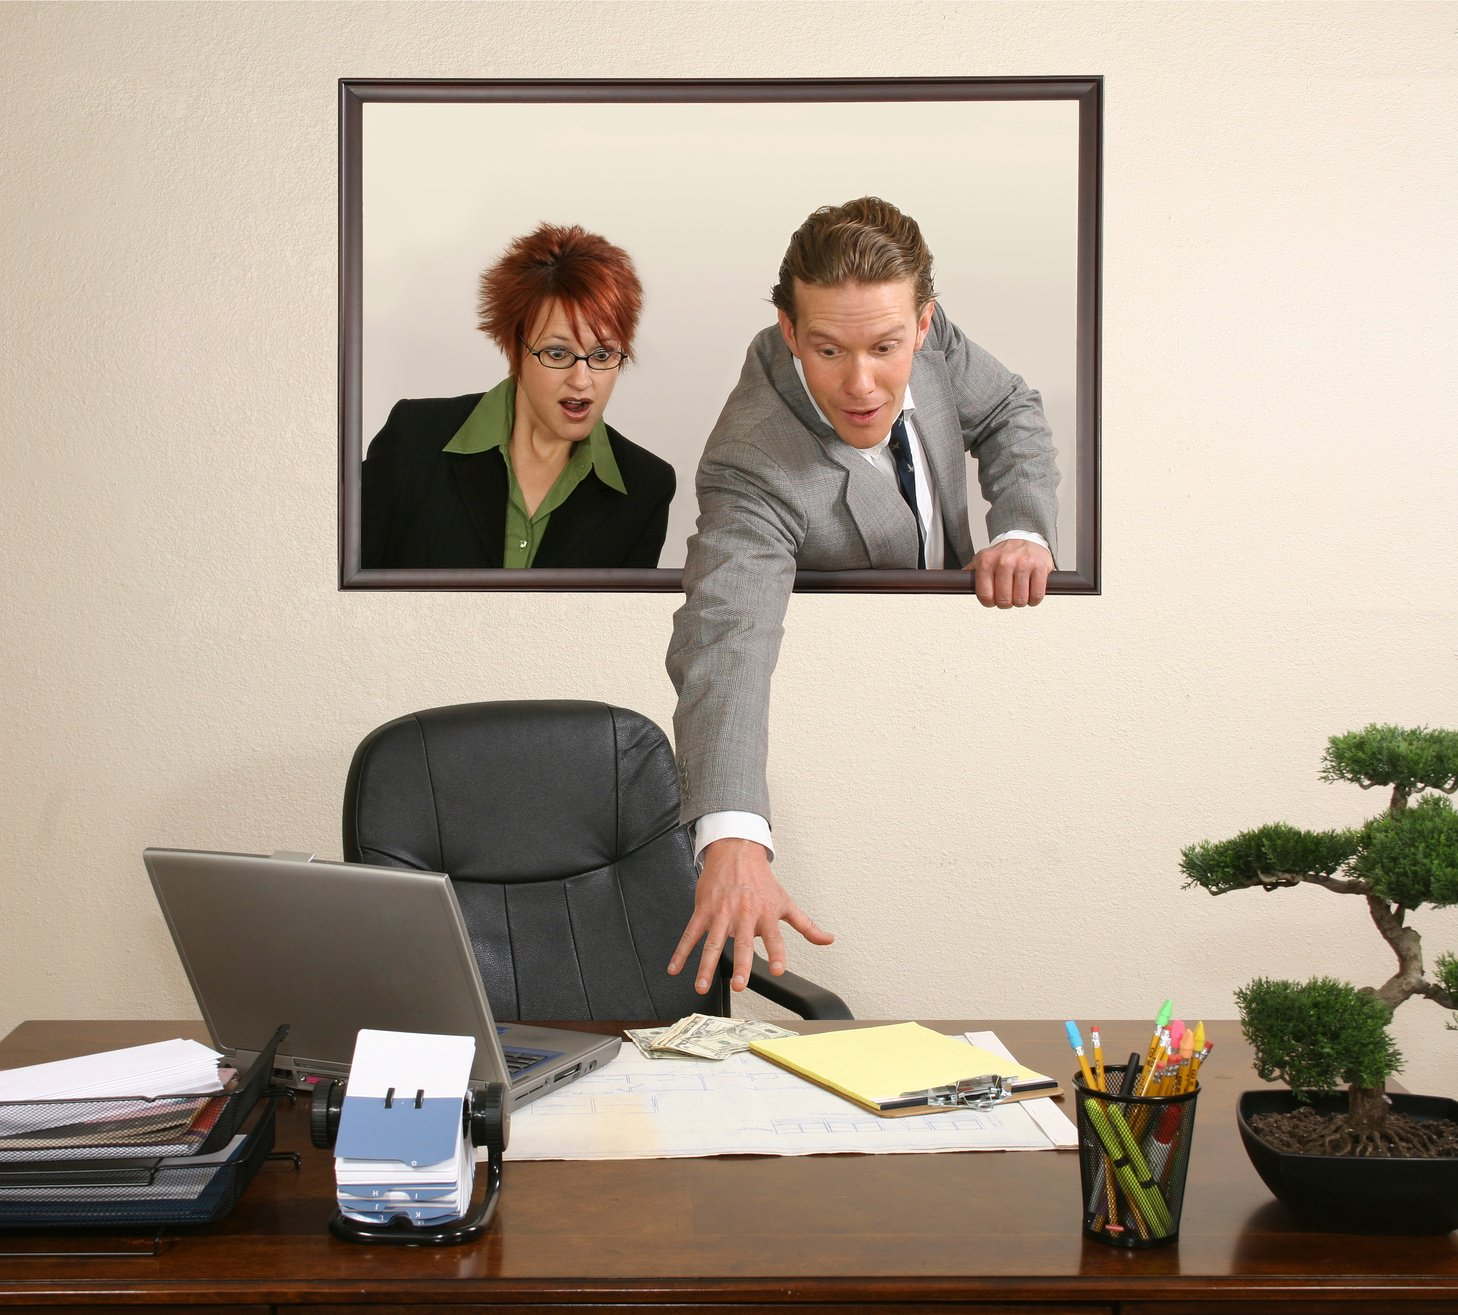 Two people reaching towards desk